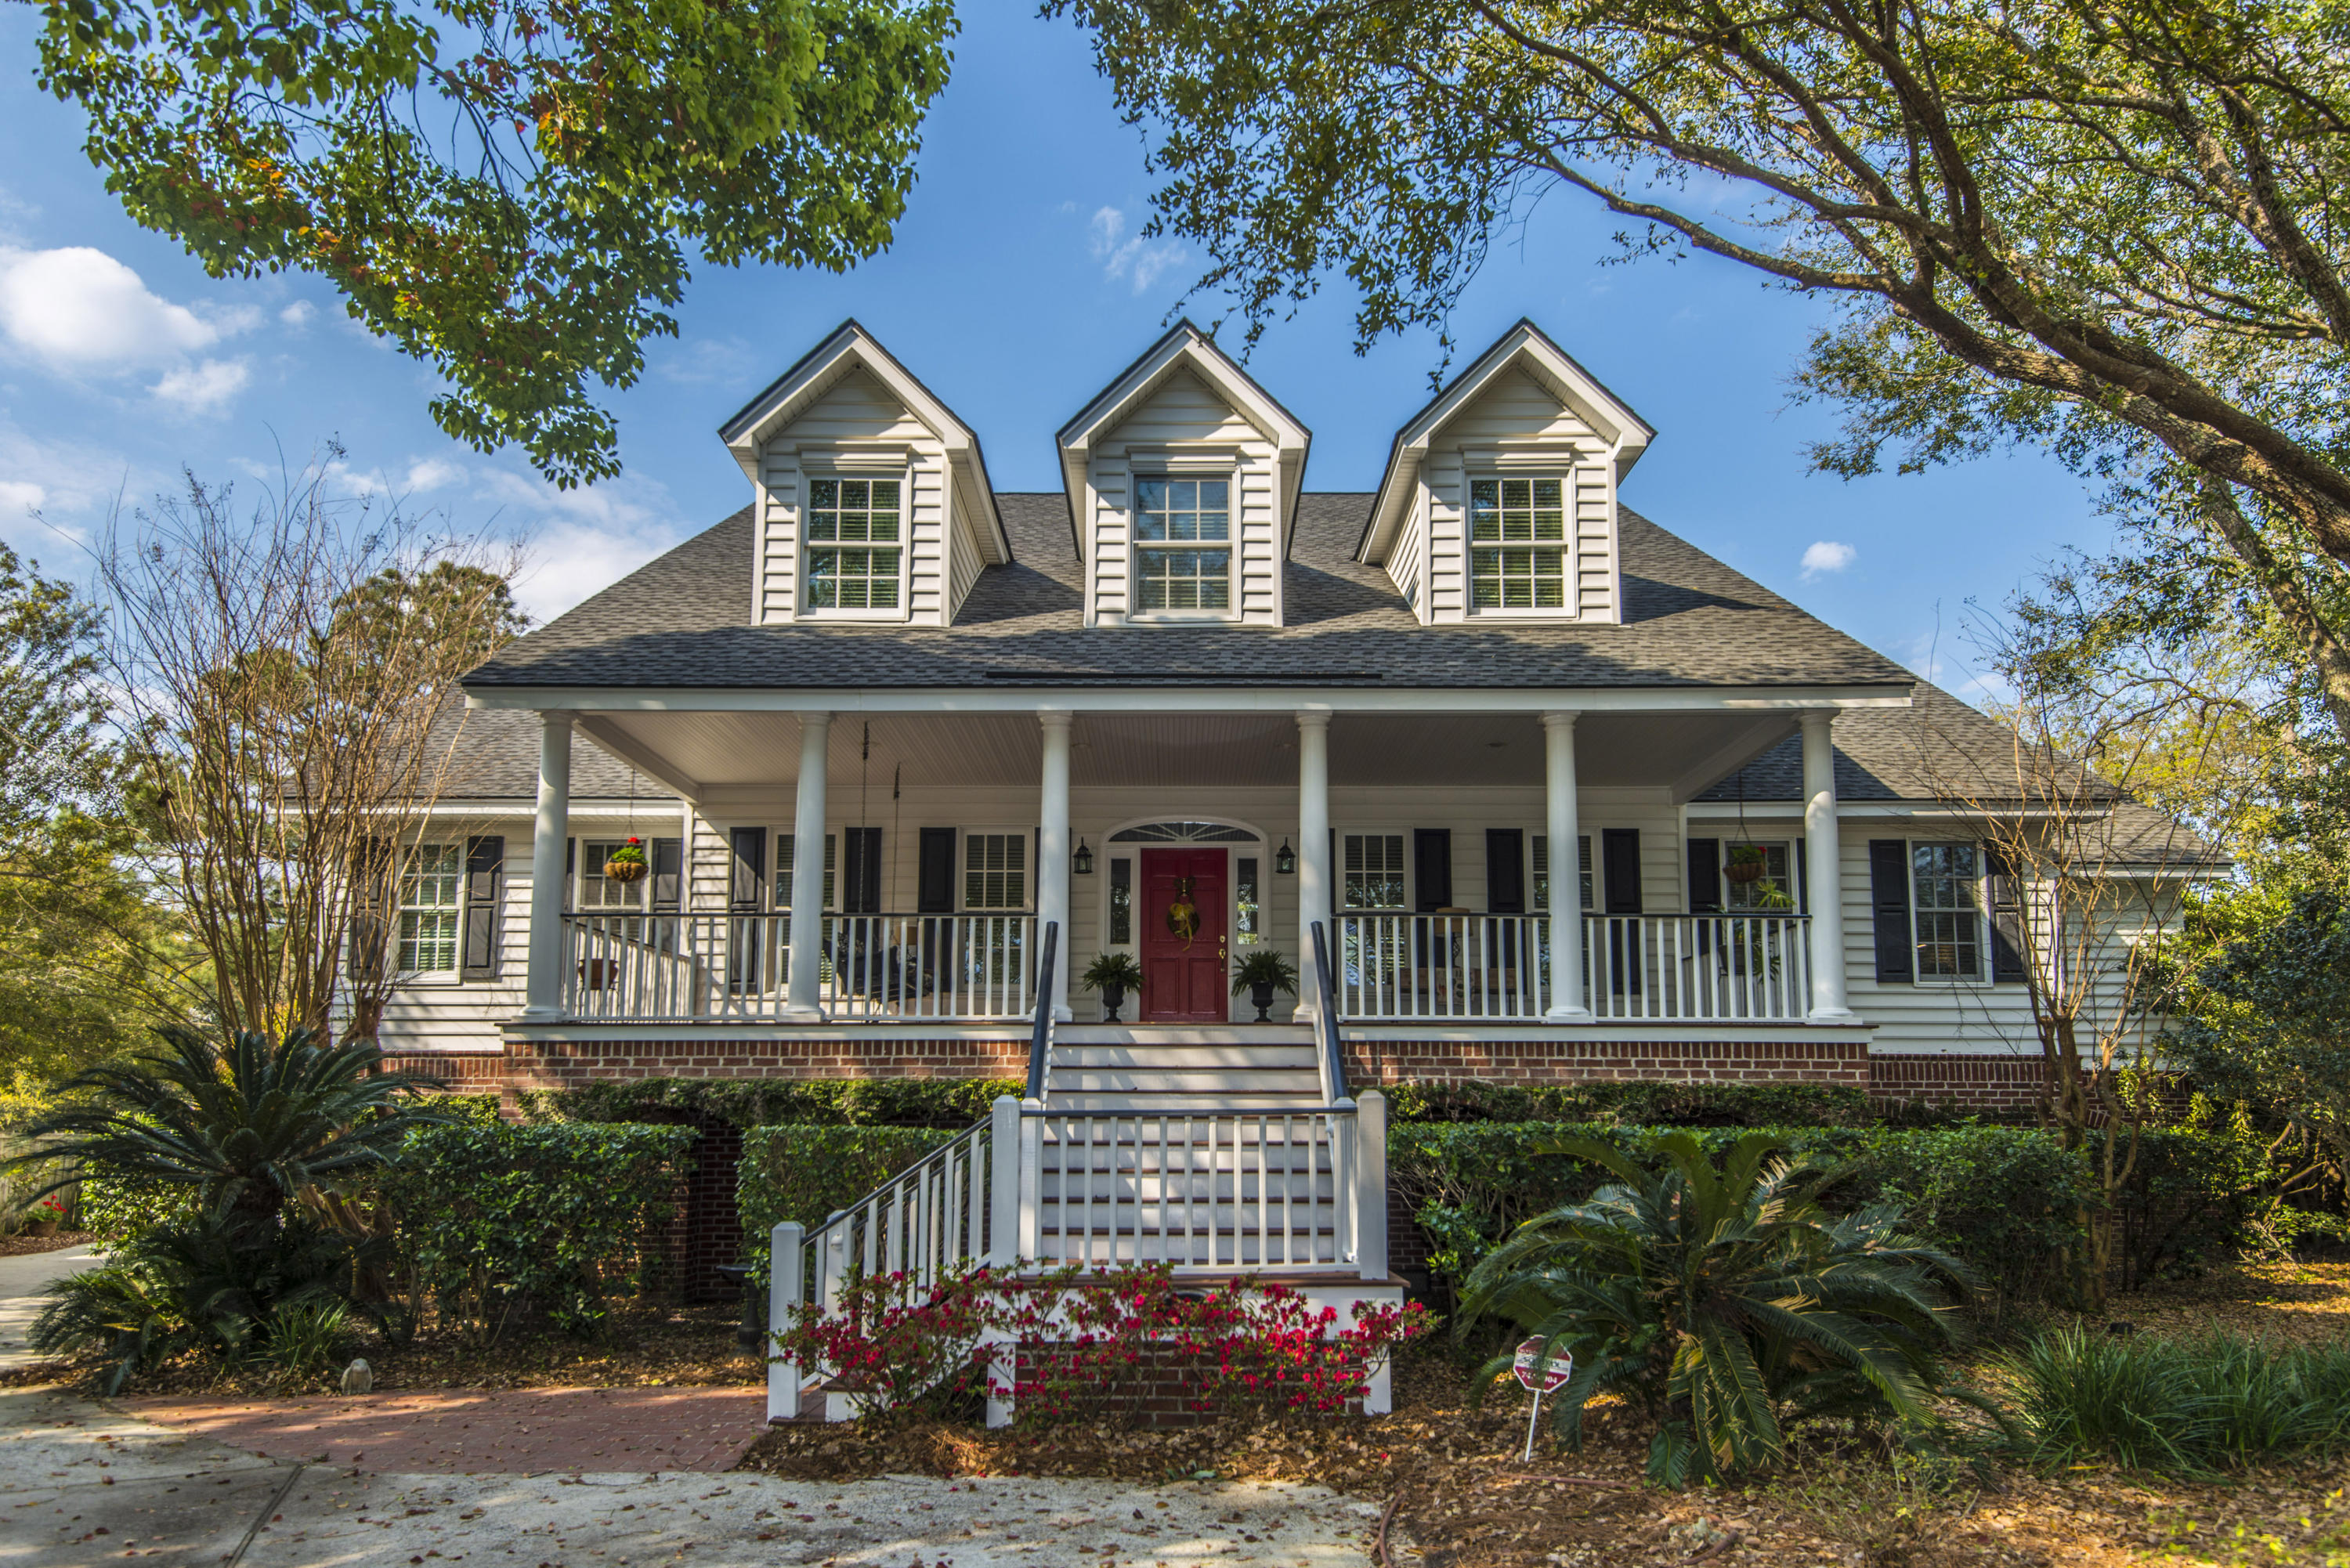 Stiles Point Plantation Homes For Sale - 906 Kushiwah Creek, Charleston, SC - 62